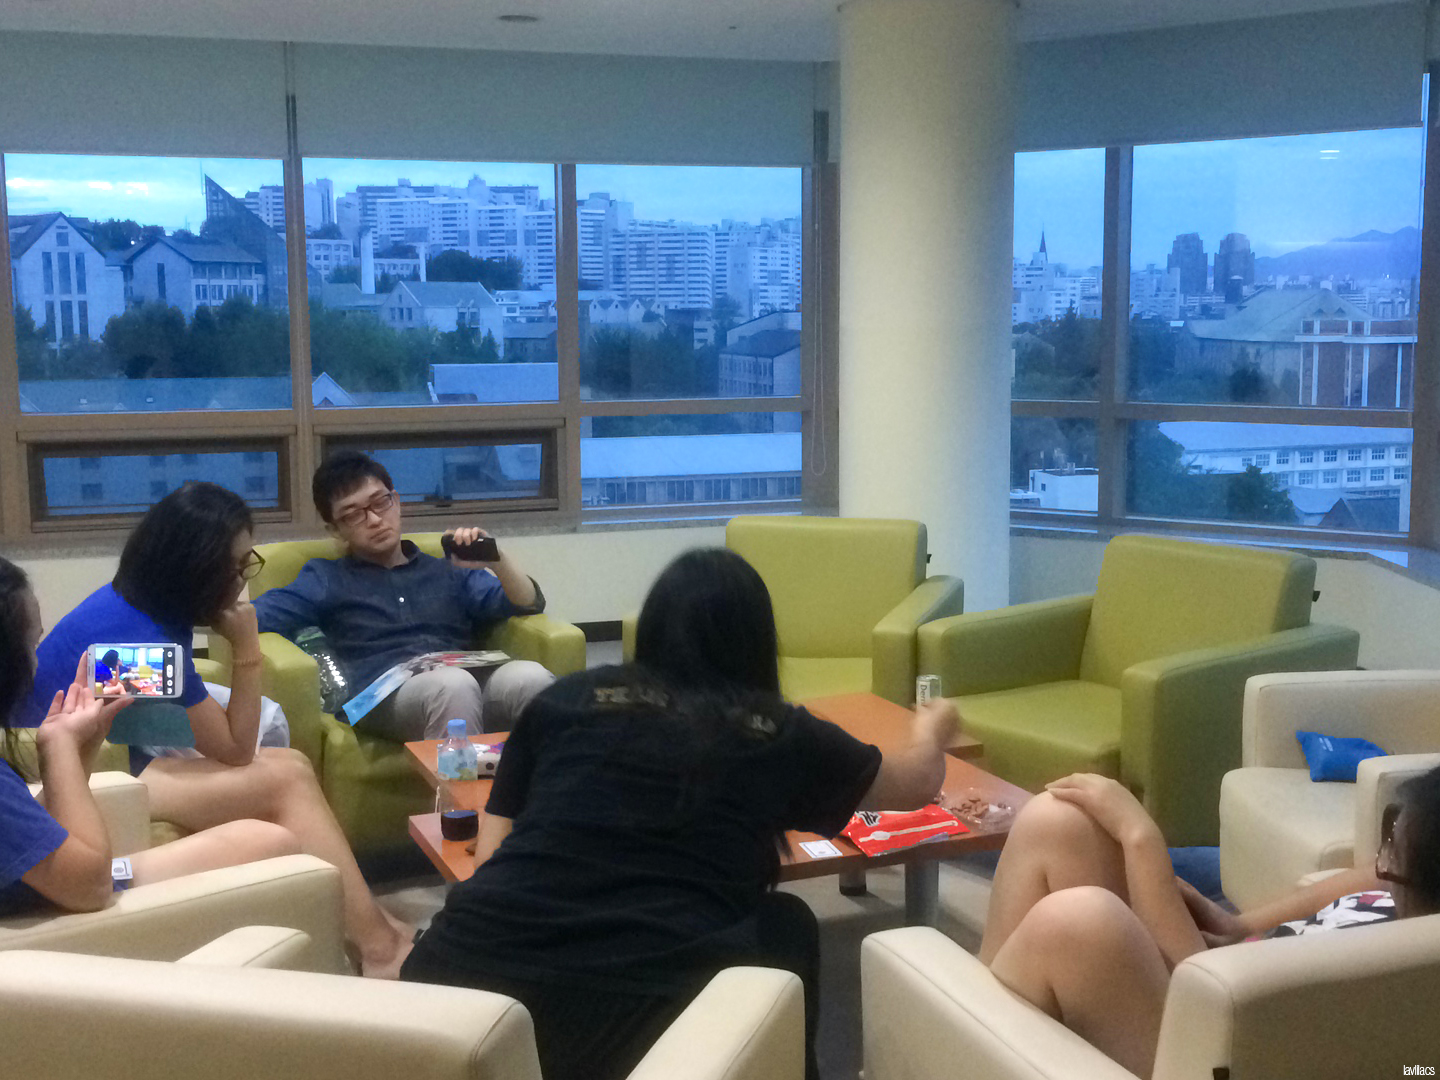 Seoul, Korea - Summer Study Abroad 2014 - SK Global House packing time and final hangout all-nighter